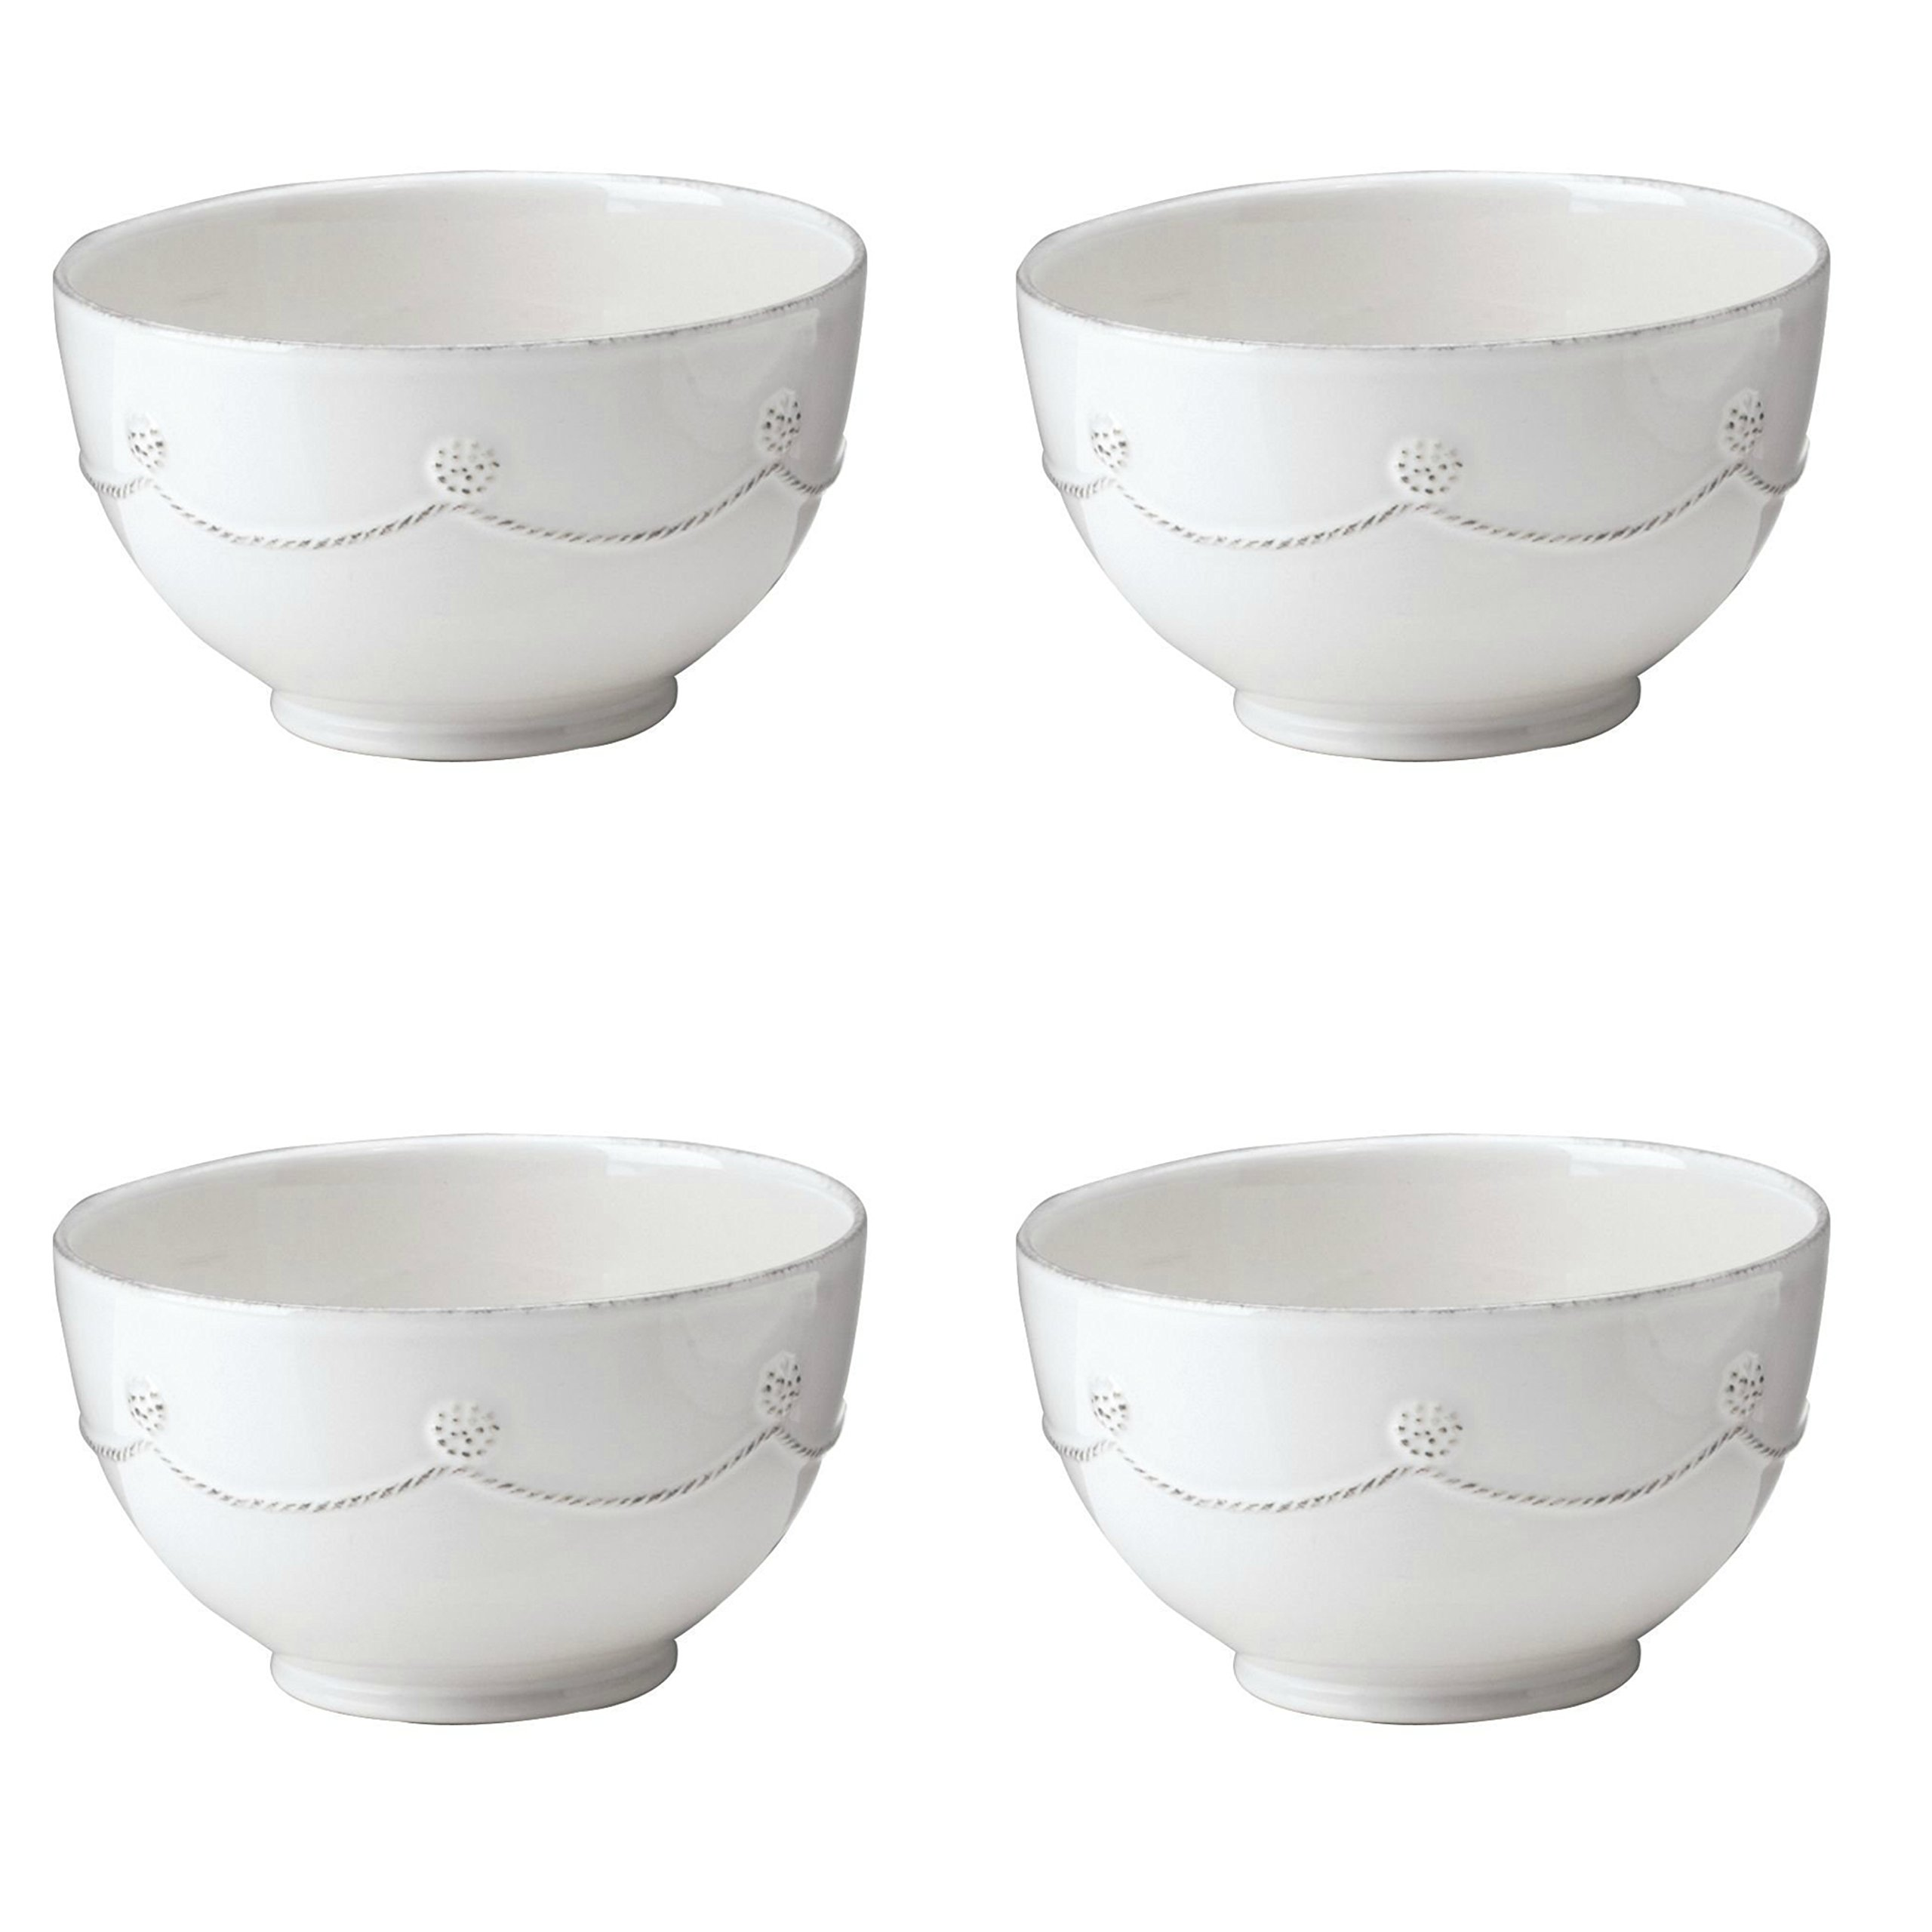 Berry and Thread Round Cereal / Ice Cream Bowl by Juliska - Whitewash Set of 4